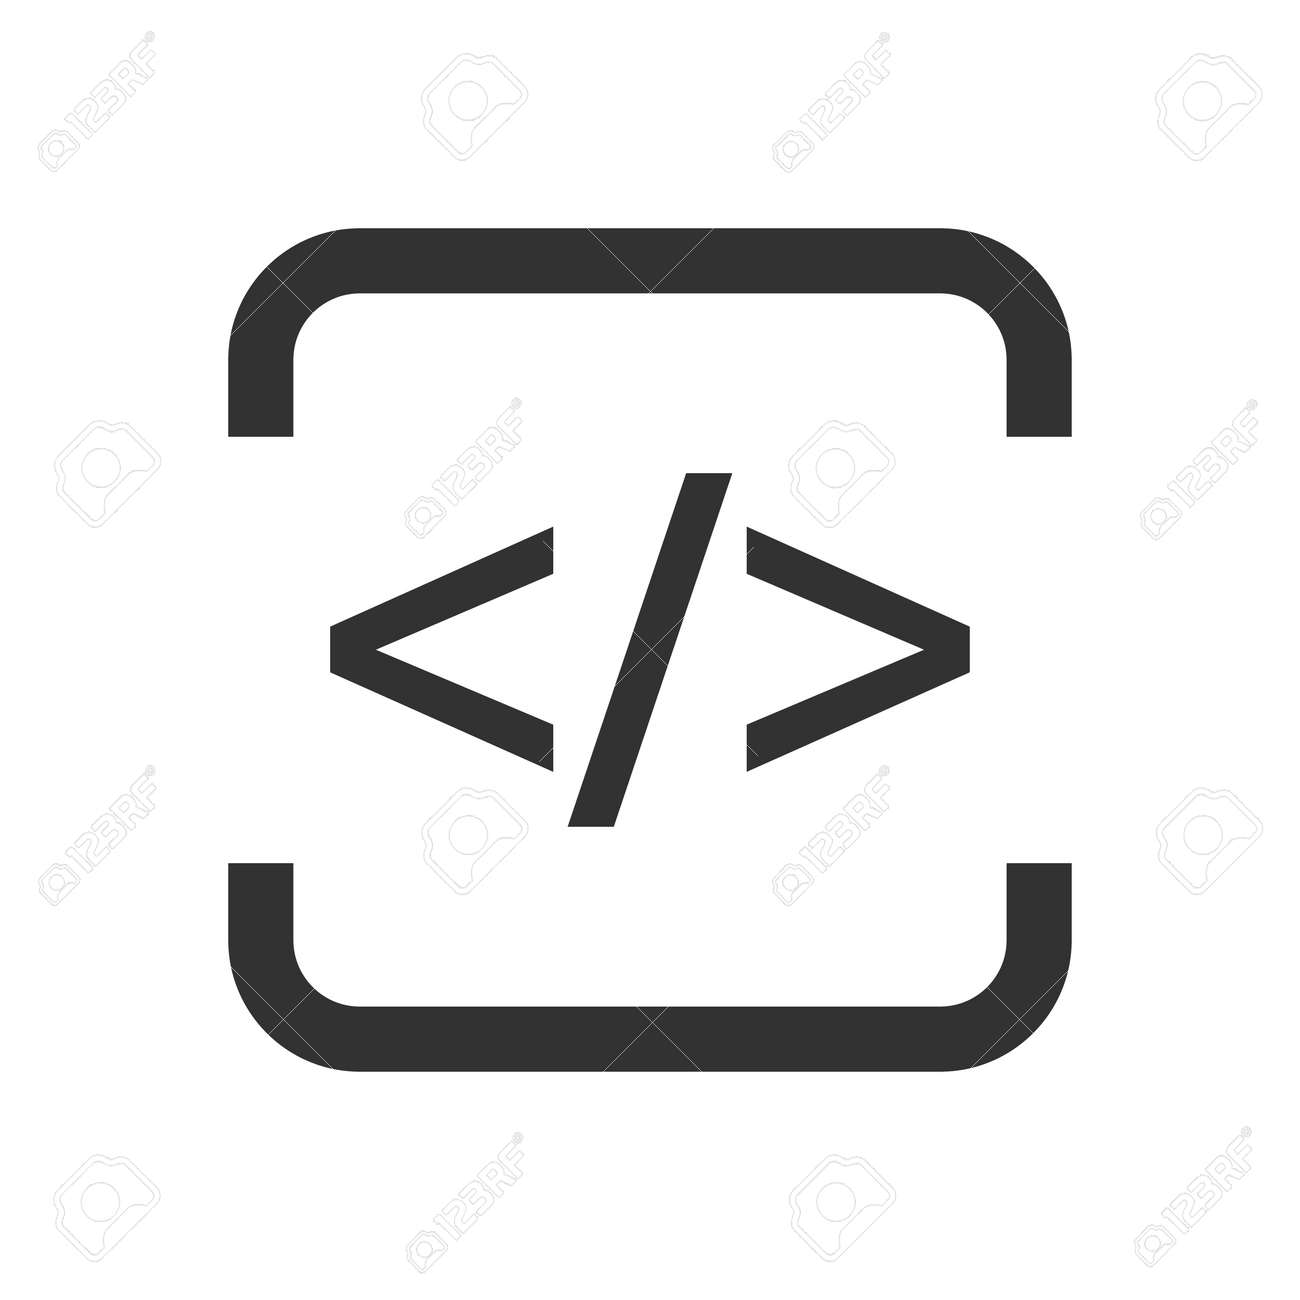 html flat icon royalty free cliparts vectors and stock rh 123rf com Arrow Button HTML Arrow HTML- Codes